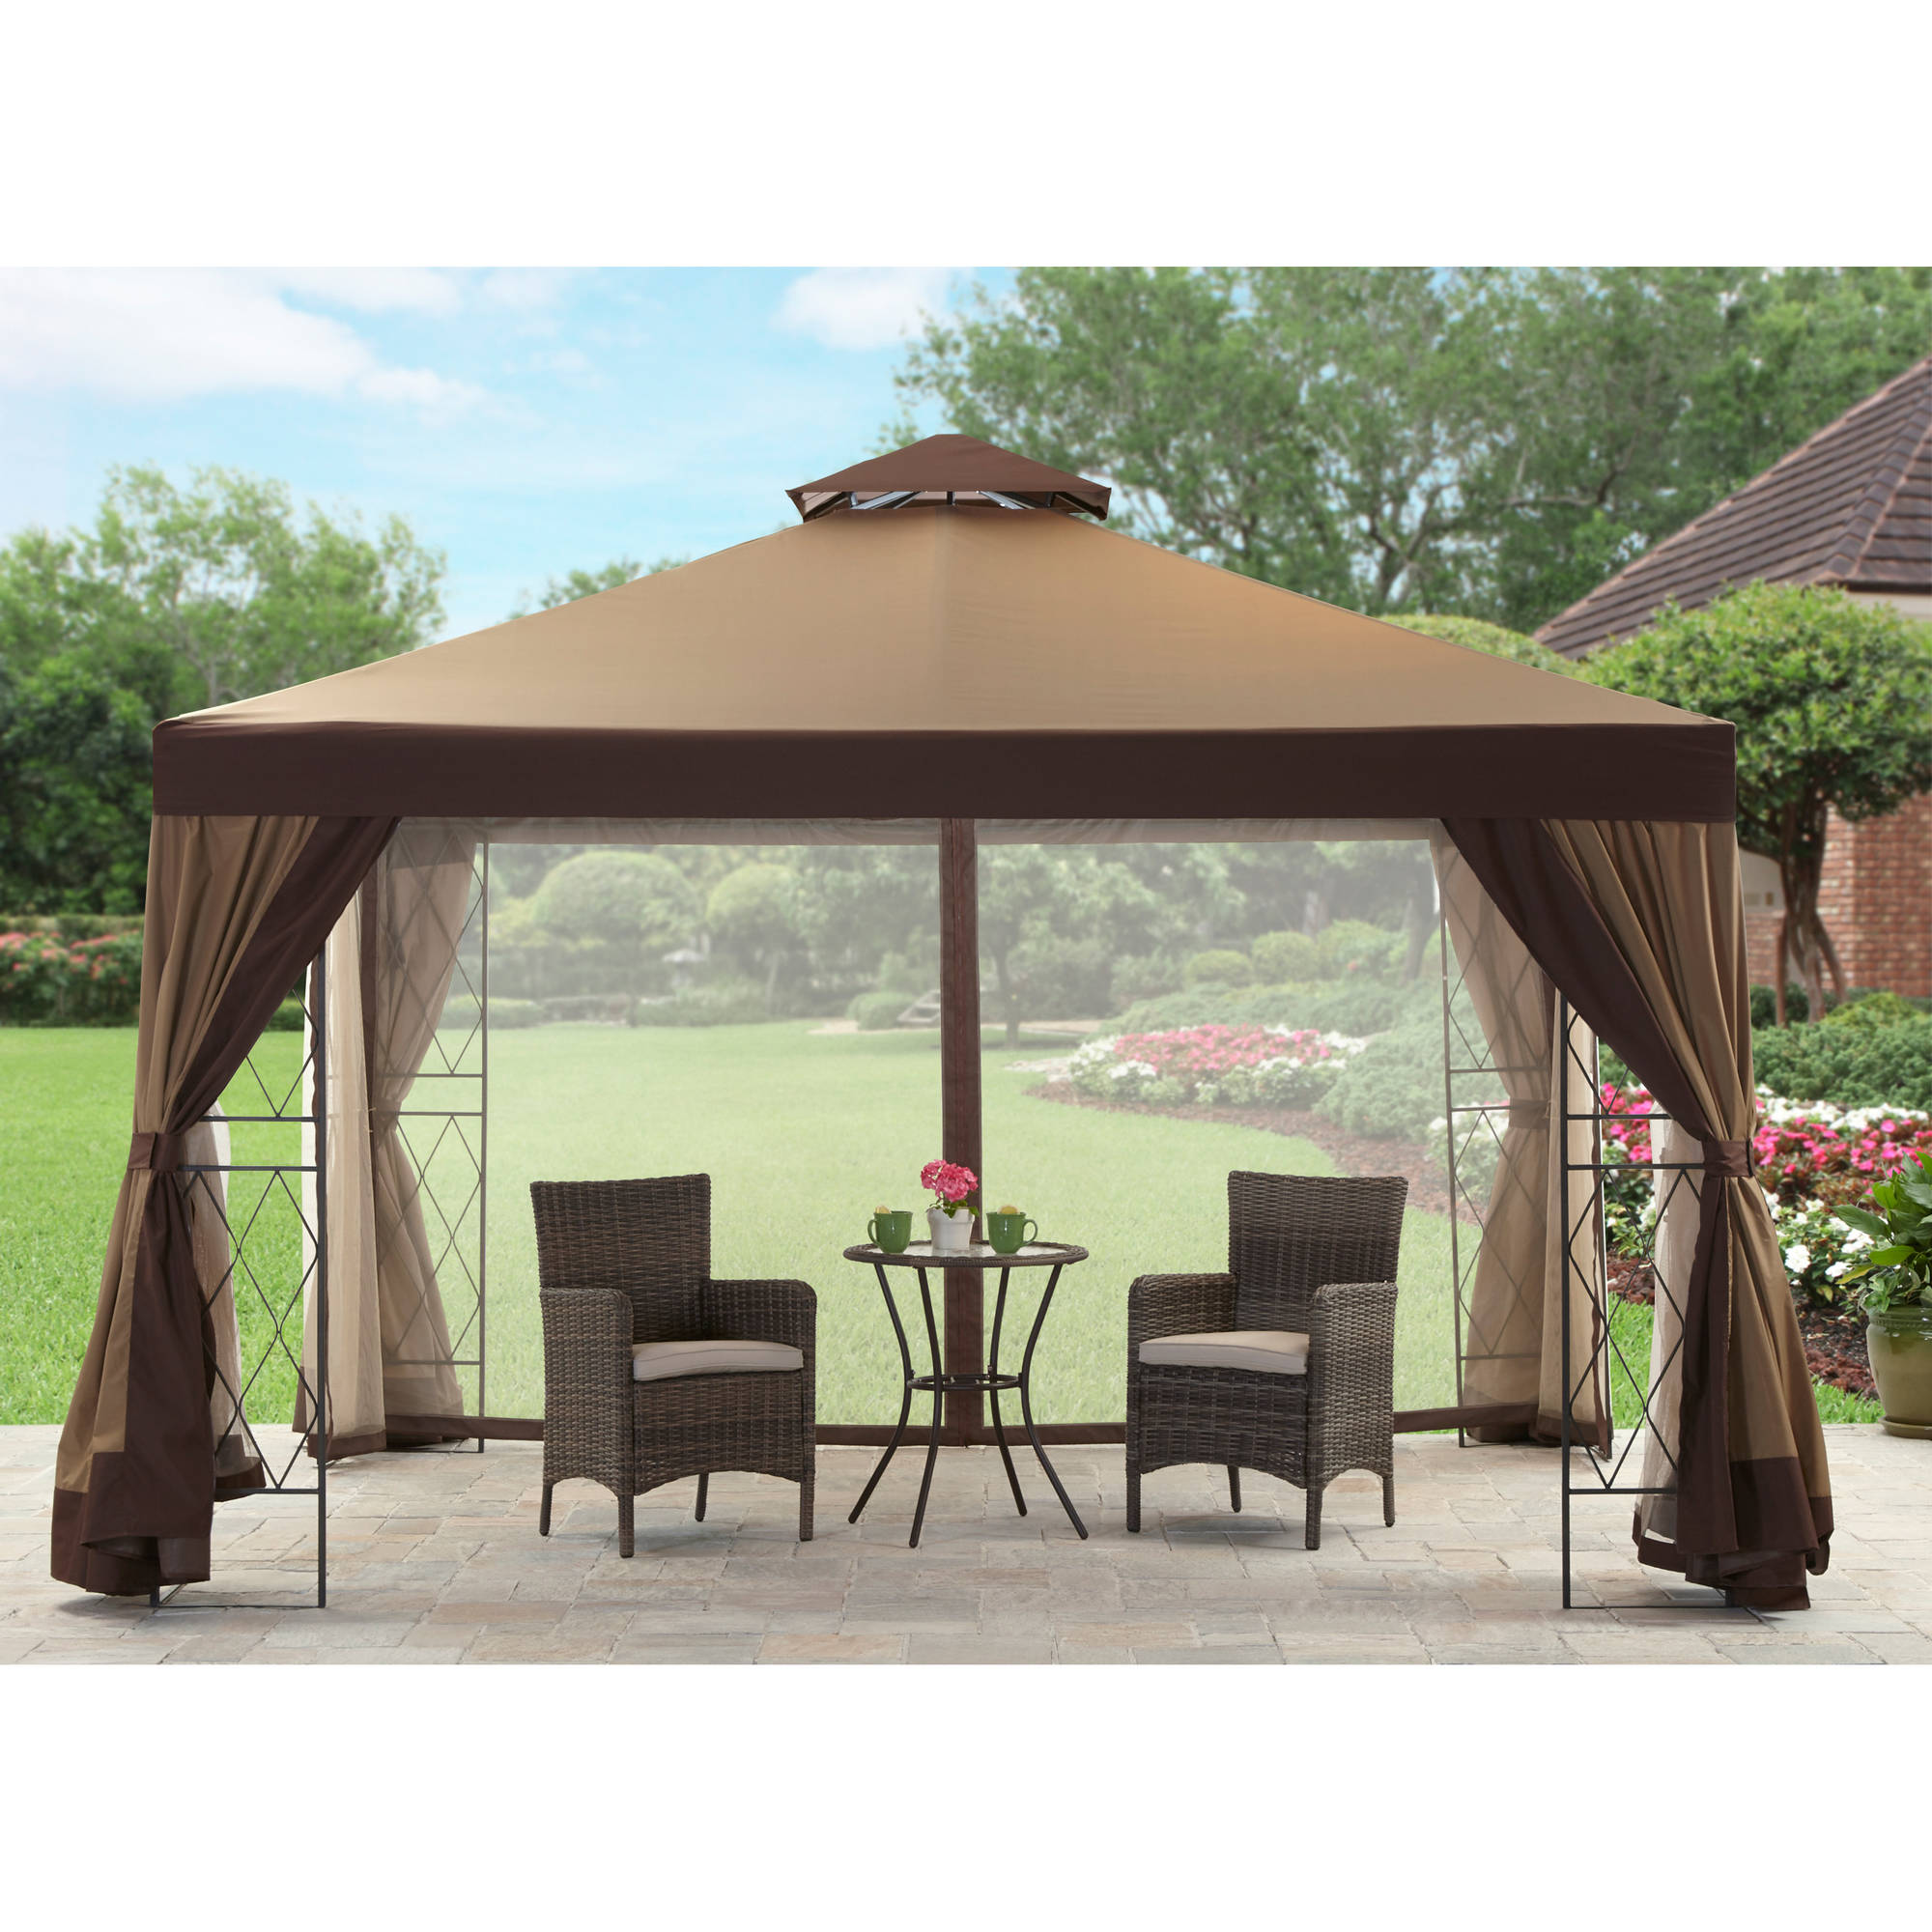 sc 1 st  Walmart & Better Homes and Gardens Kimber Valley Gazebo 12u0027 x 10u0027 - Walmart.com